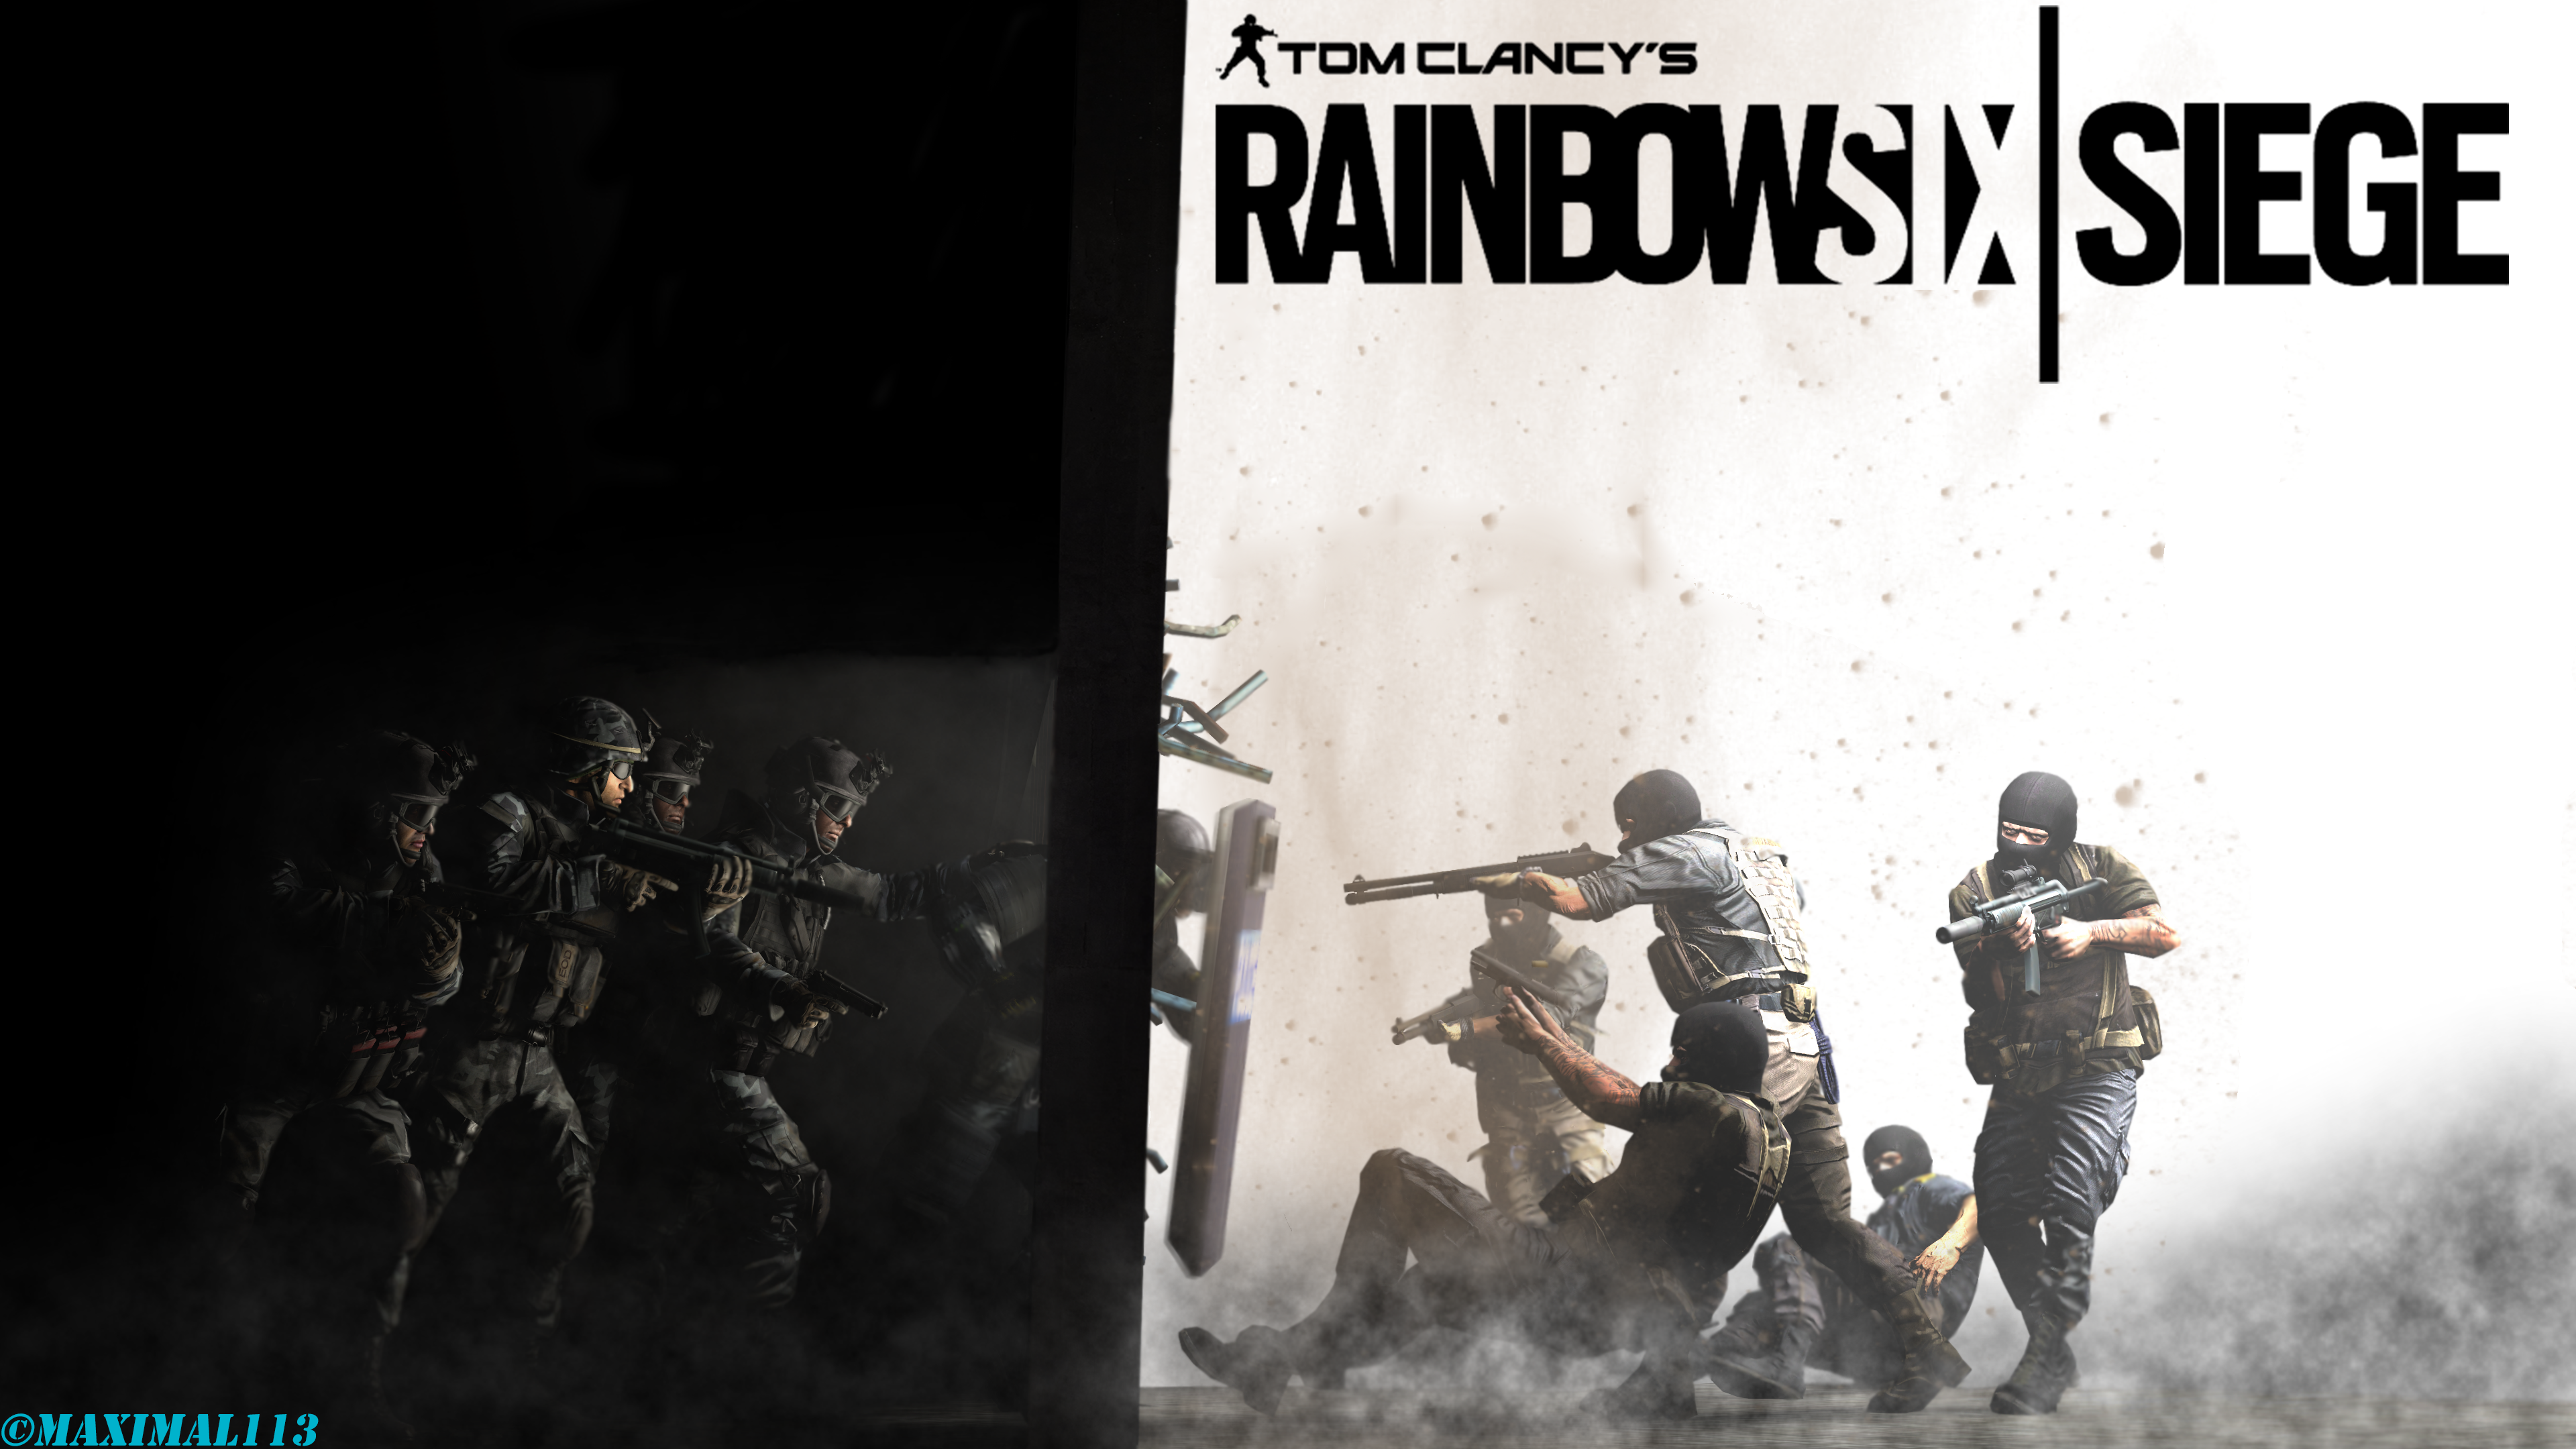 Rainbow 6 siege clipart png black and white Rainbow six siege clipart - ClipartFest png black and white